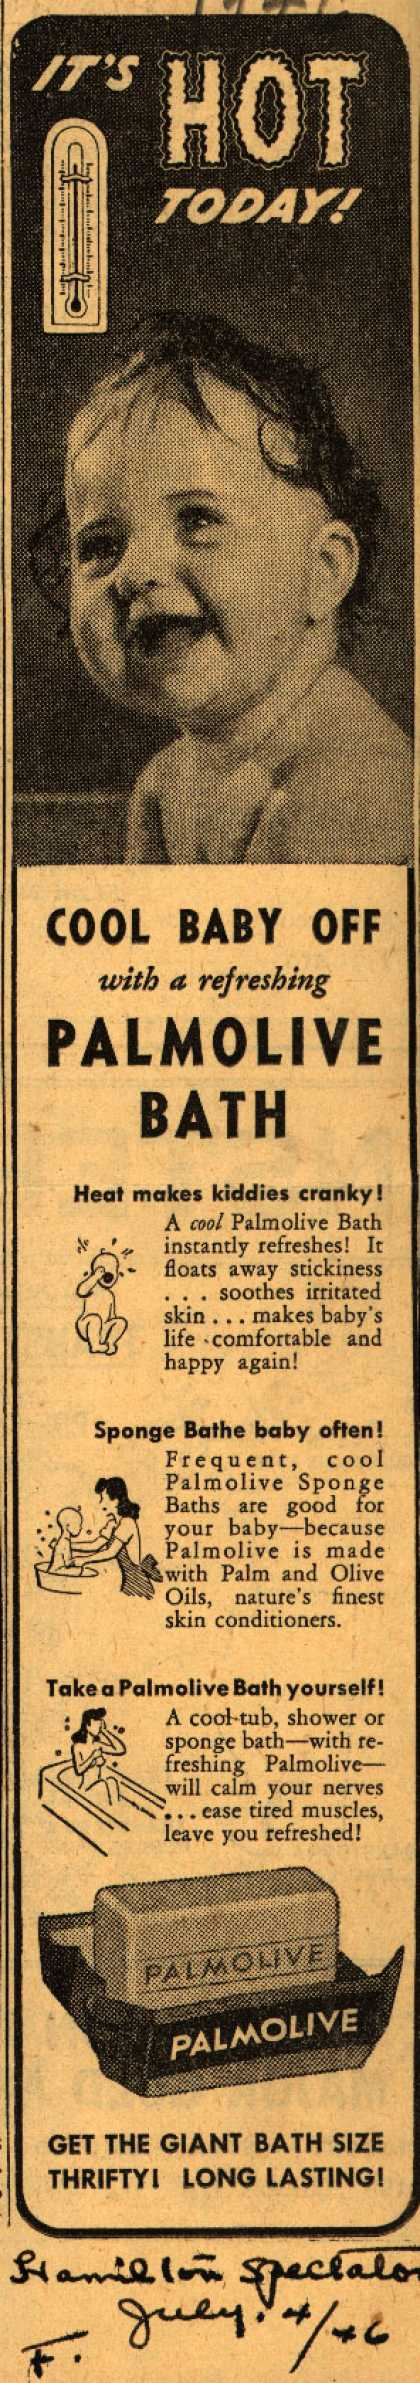 Palmolive Company's Palmolive Soap – It's HOT Today (1946)